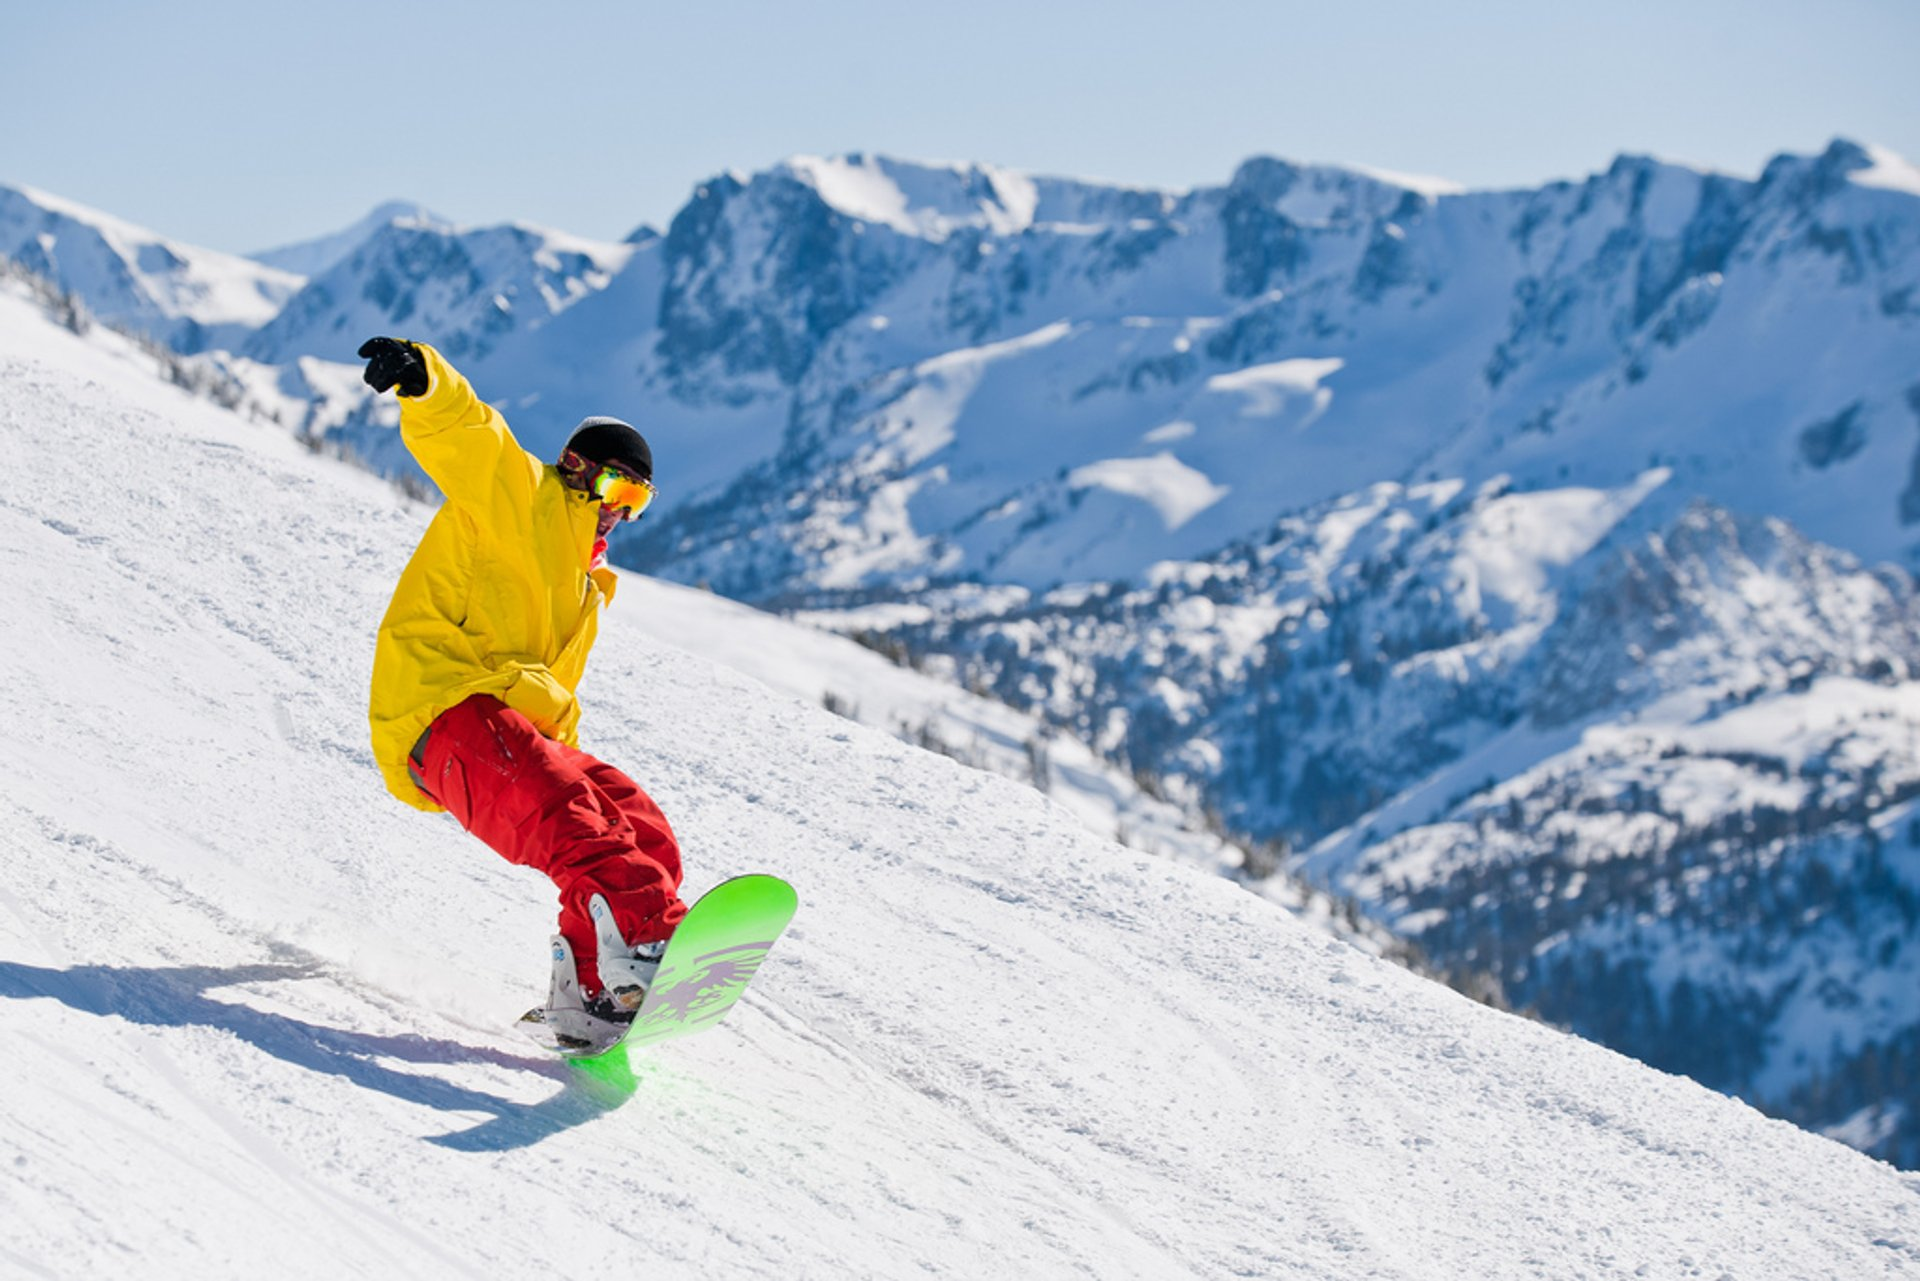 Skiing and Snowboarding  in Los Angeles 2020 - Best Time